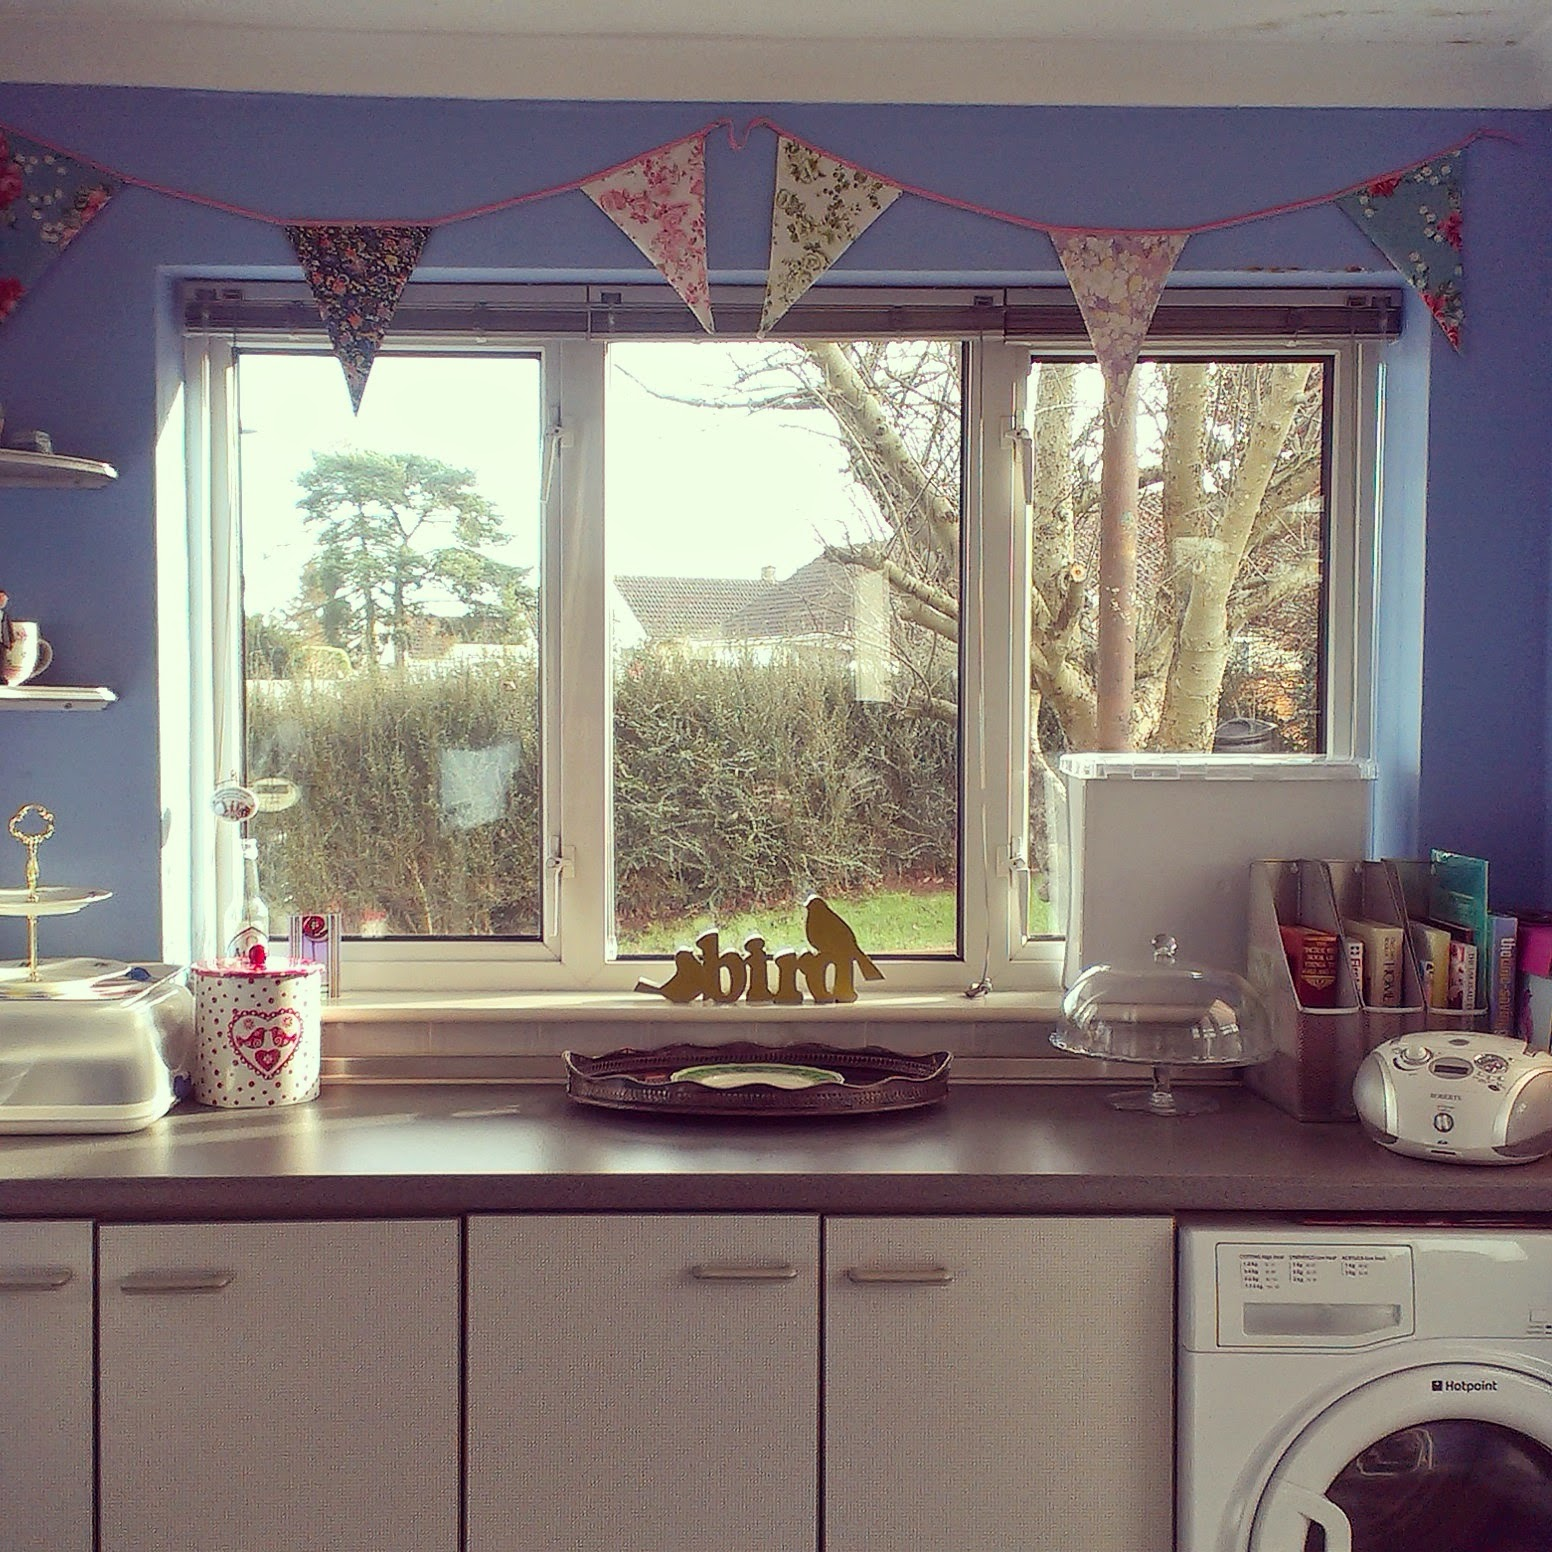 12pm - a clean kitchen